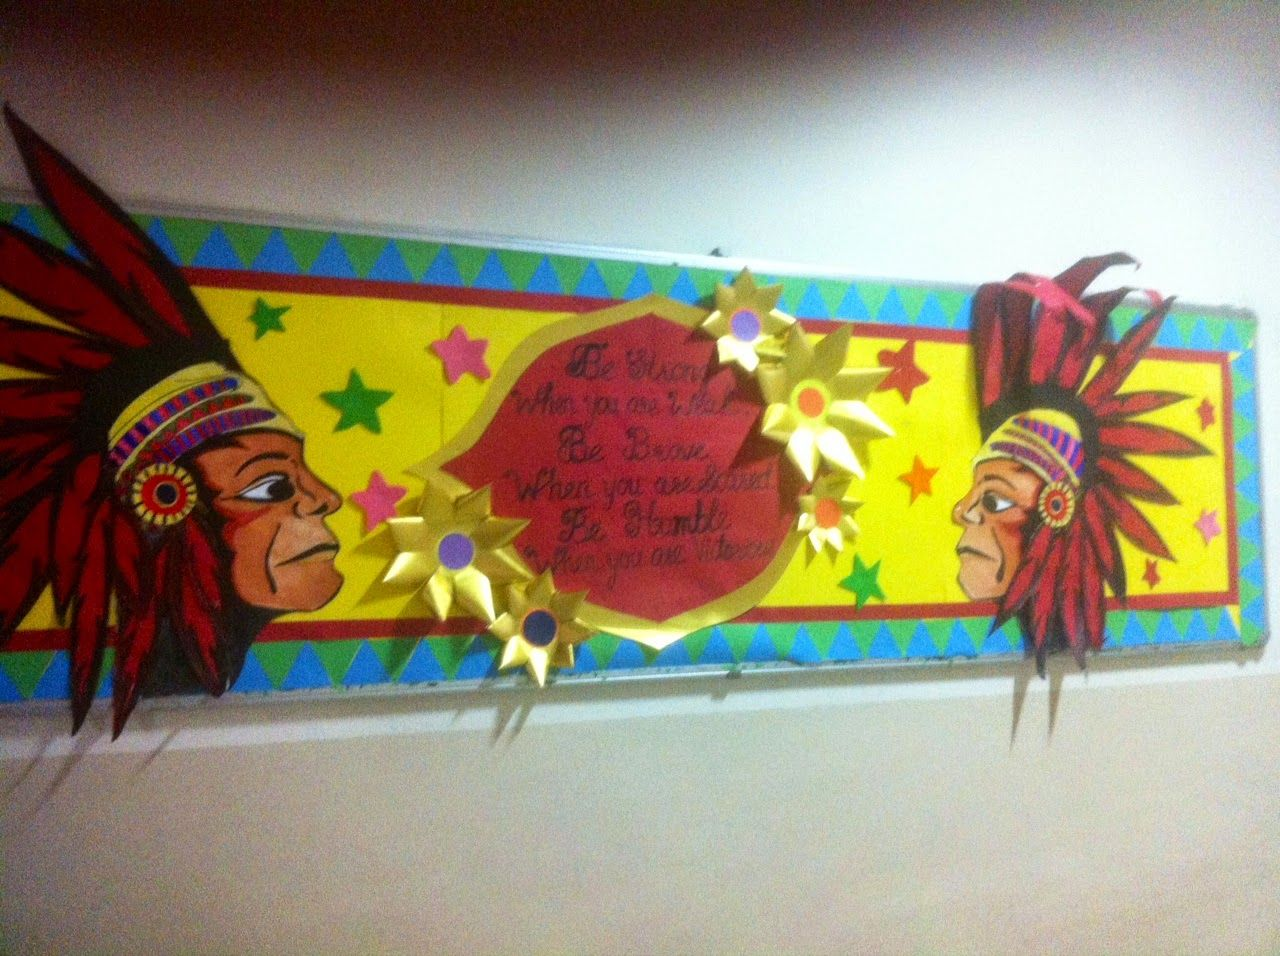 Art craft ideas and bulletin boards for elementary schools vegetable - Art Craft Ideas And Bulletin Boards For Elementary Schools Ancient Indian Proverb Bulletin